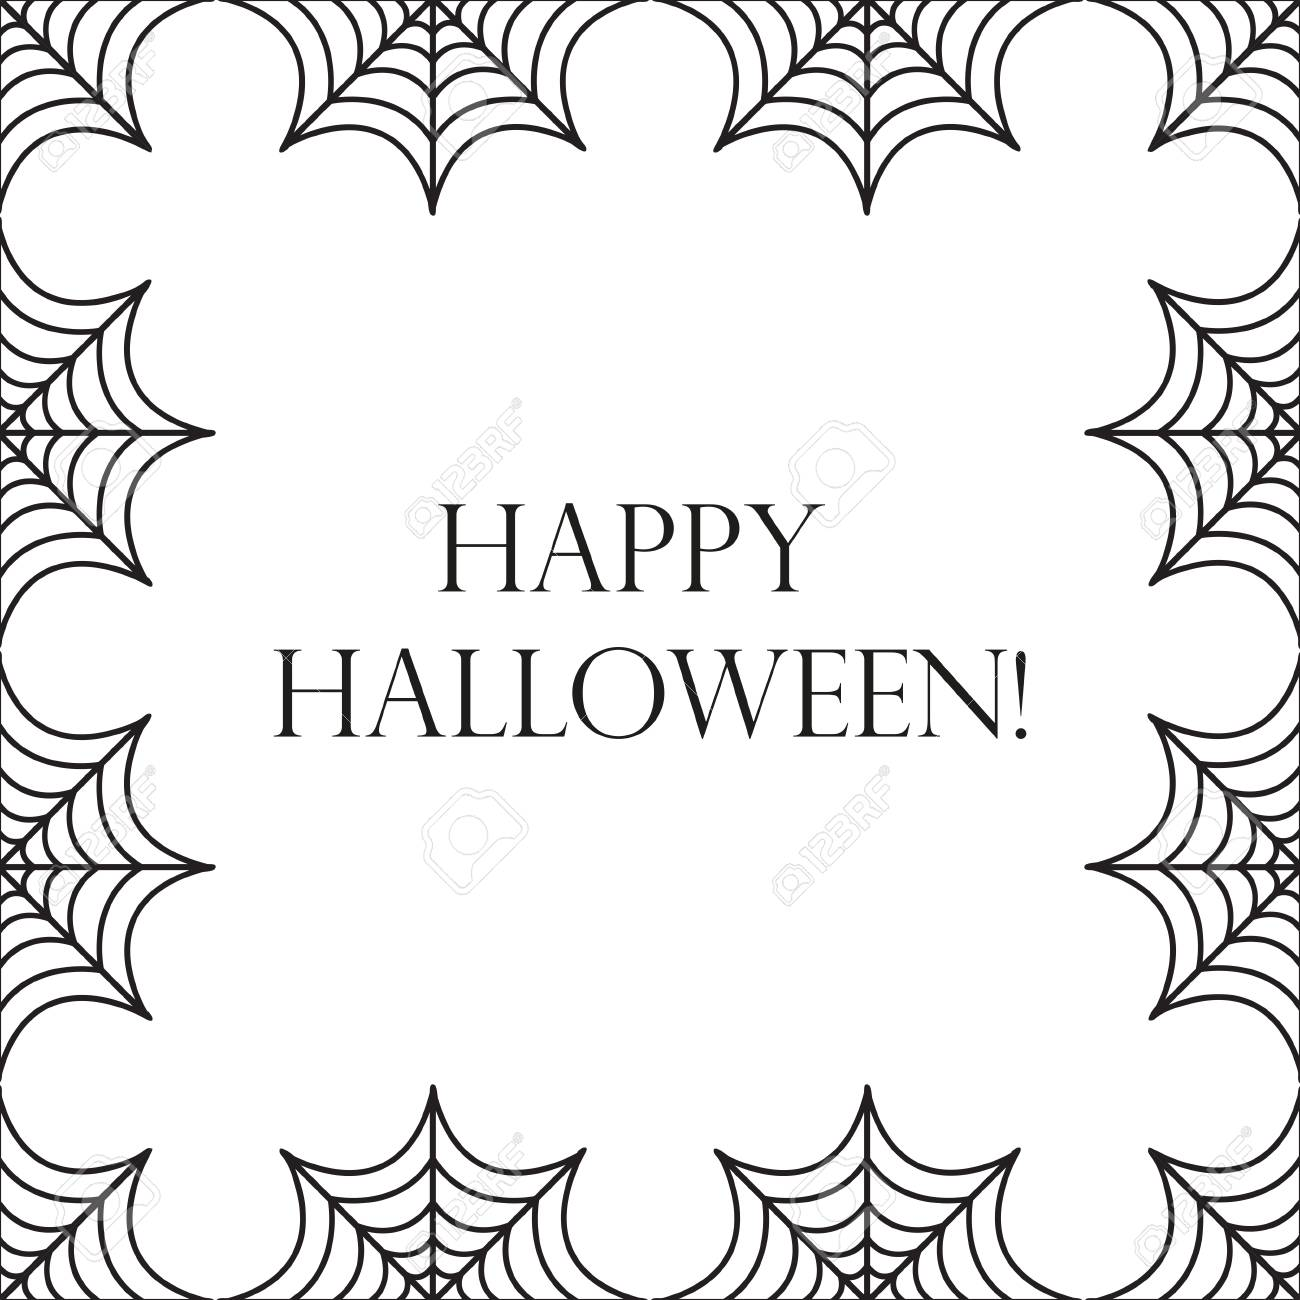 halloween square frame for text with spider web template for